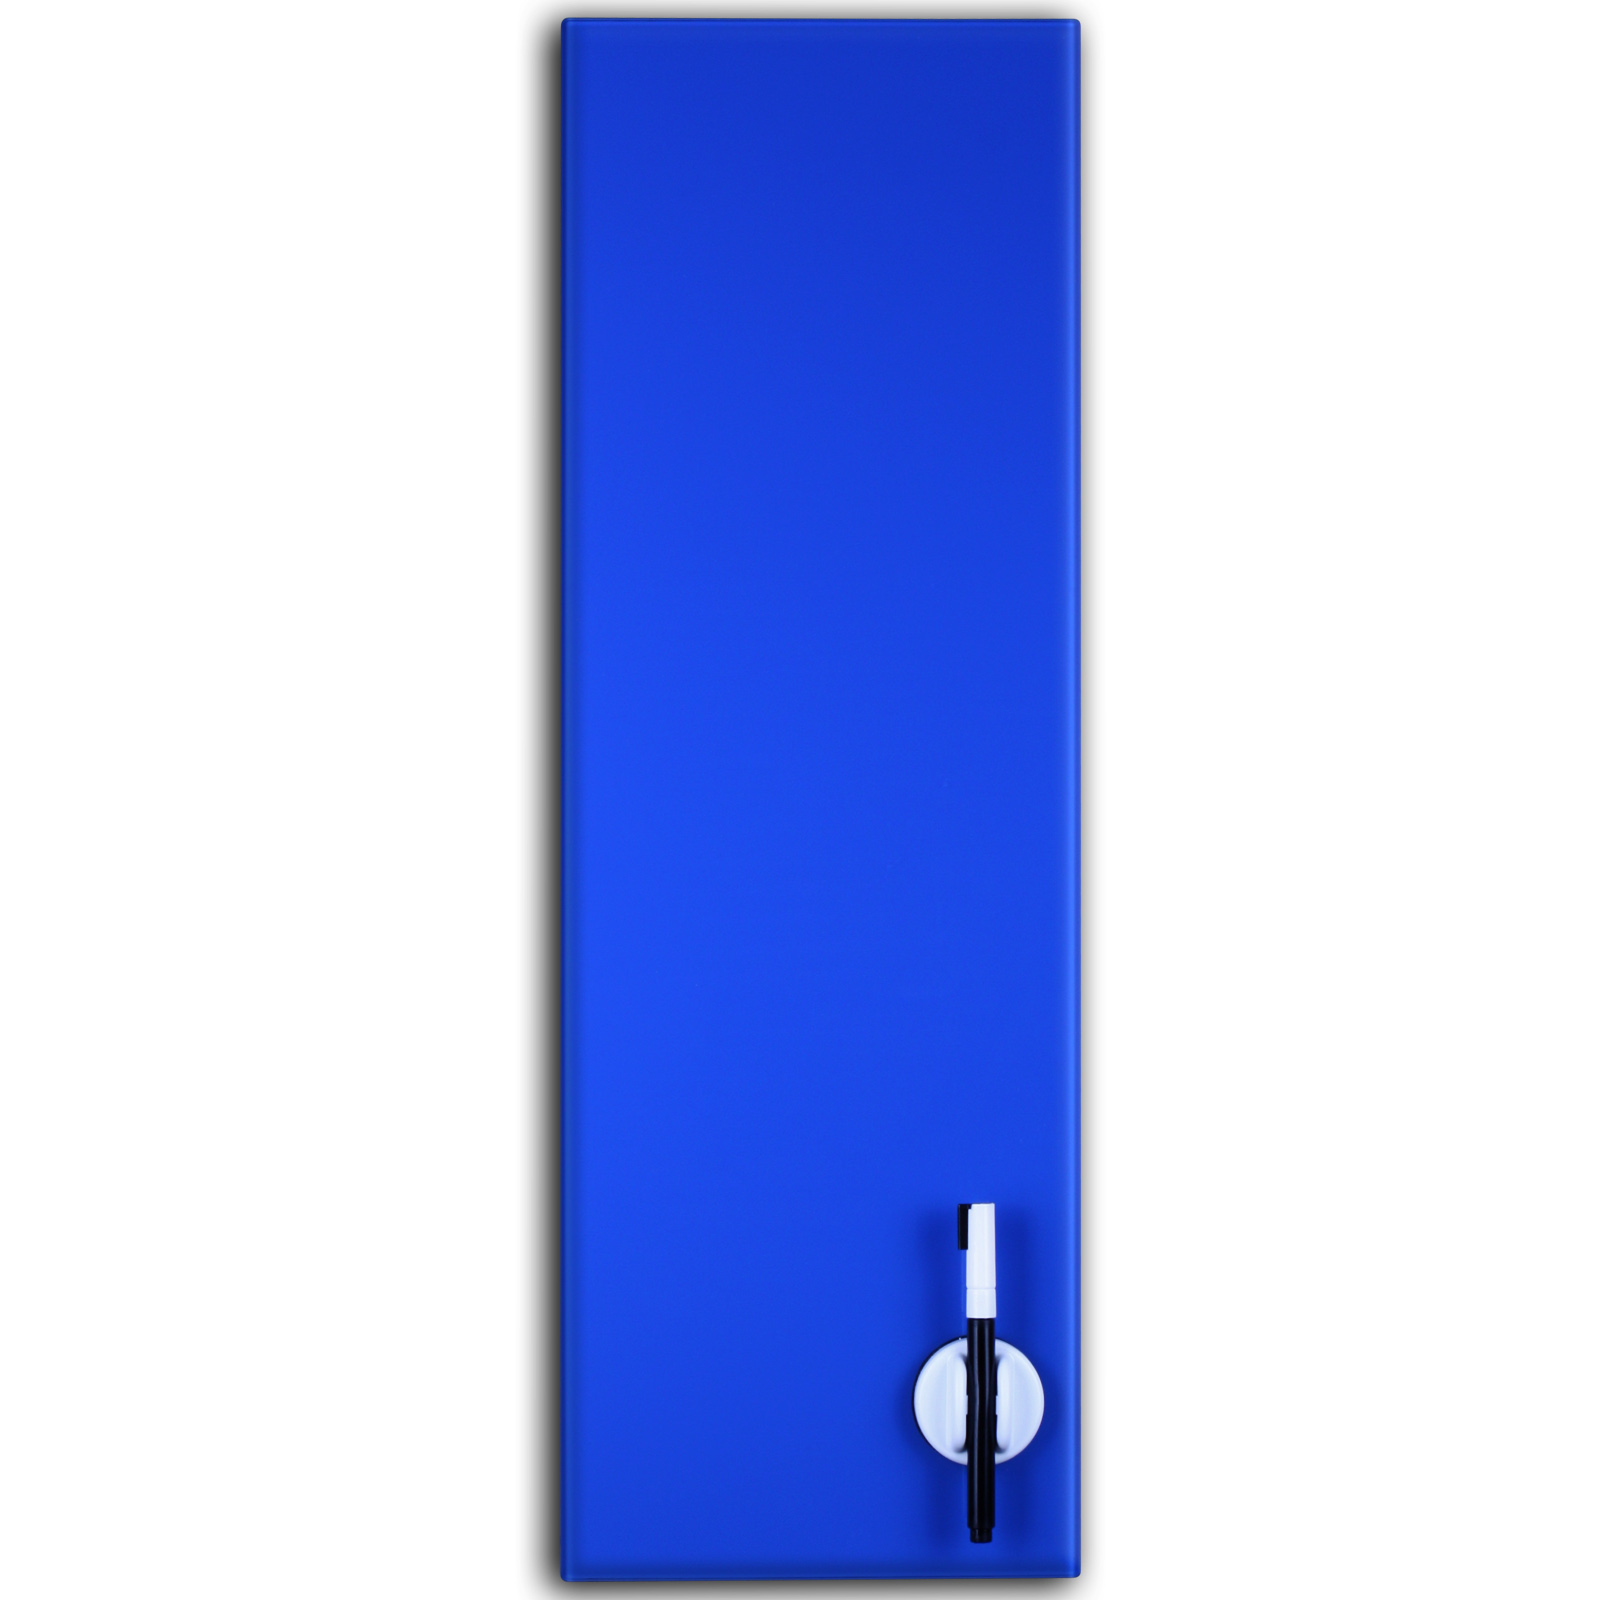 glas magnettafel pinnwand memoboard whiteboard farbe blau ebay. Black Bedroom Furniture Sets. Home Design Ideas